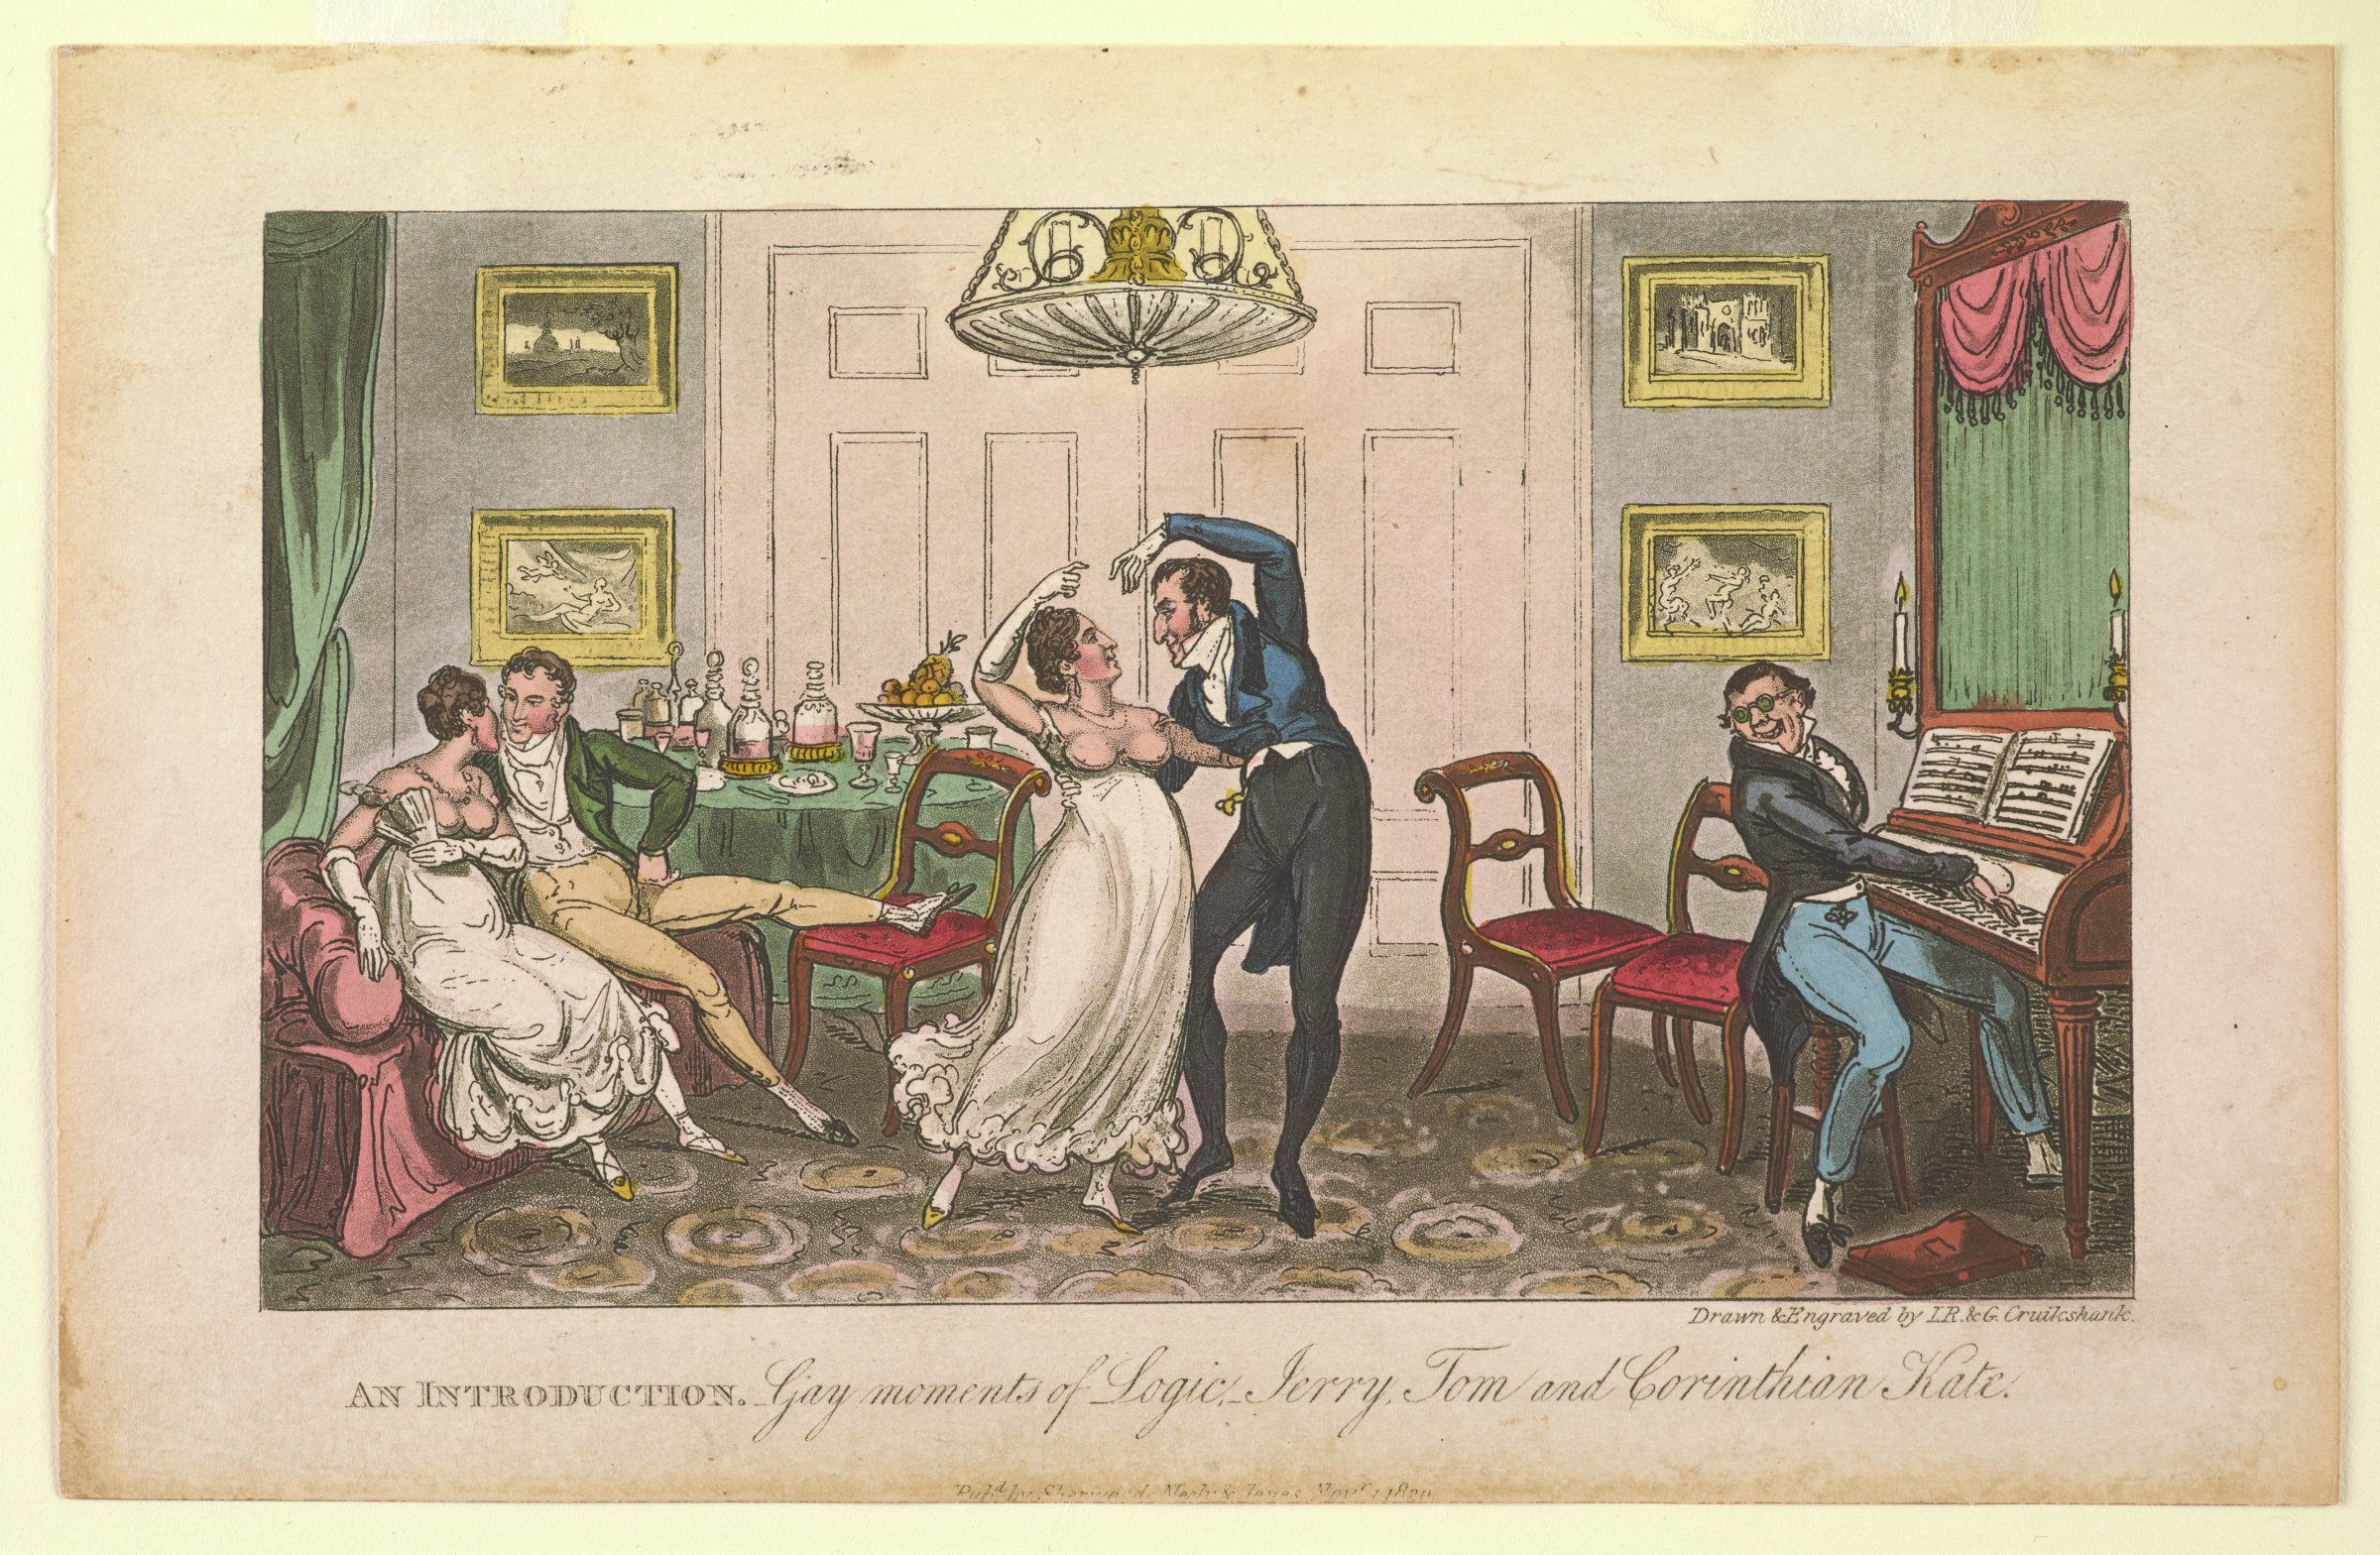 Scene of an interior in which a couple sits on a couch as another couple dances and a man plays a piano.